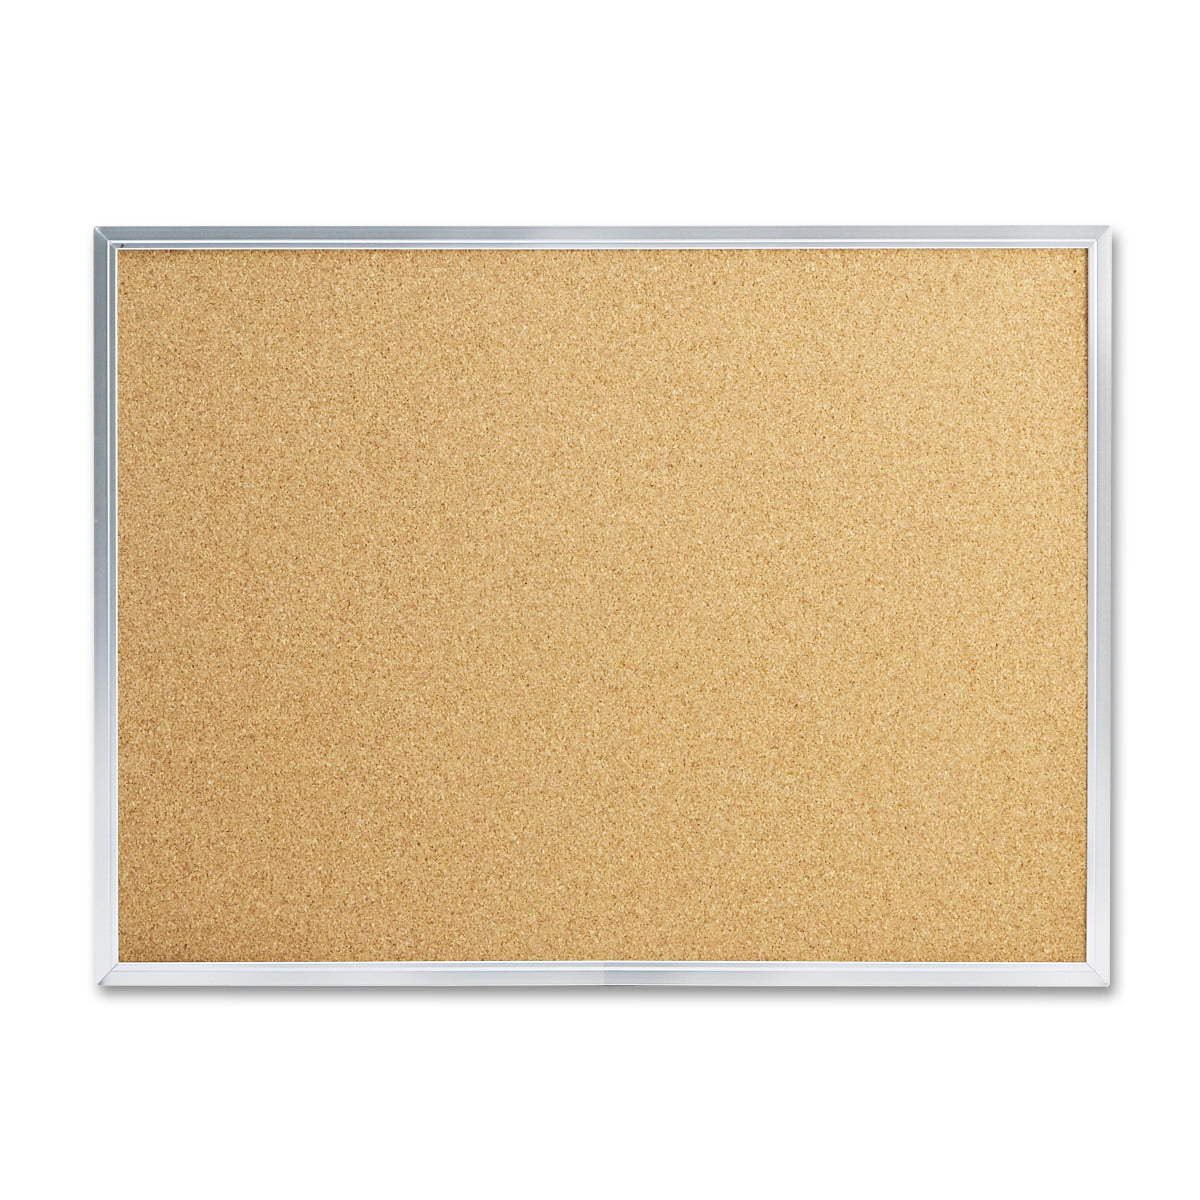 """Mead Cork Bulletin Board, 24"""" x 18\ by MEAD PRODUCTS"""